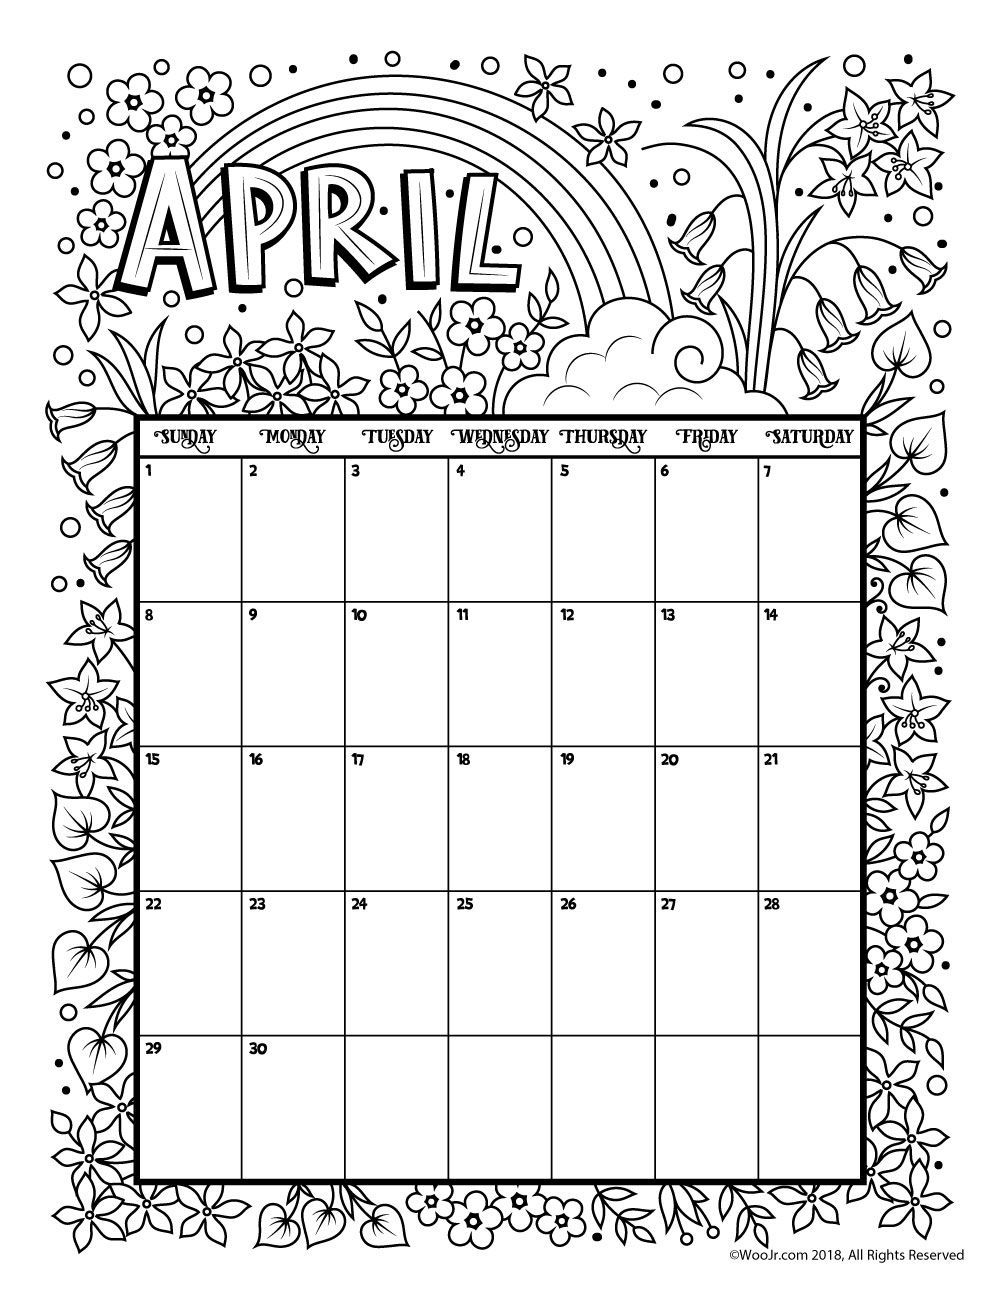 Printable Coloring Calendar 2019 With For And 2018 Holiday Happiness